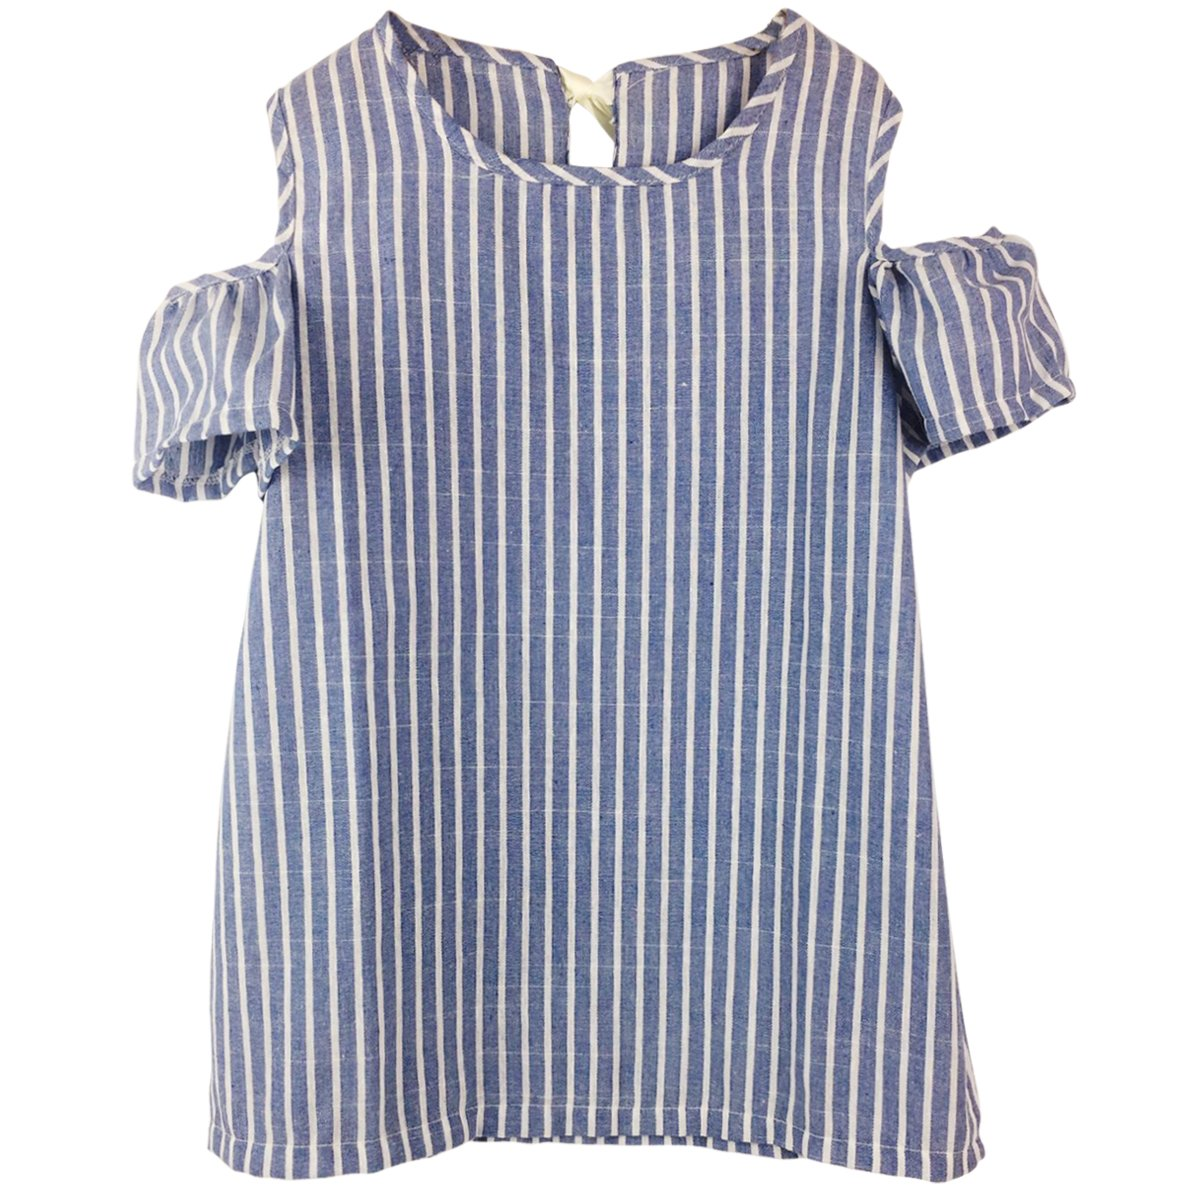 Jastore Baby Girl Clothes Summer Dress Cotton Cute Striped Princess Dresses